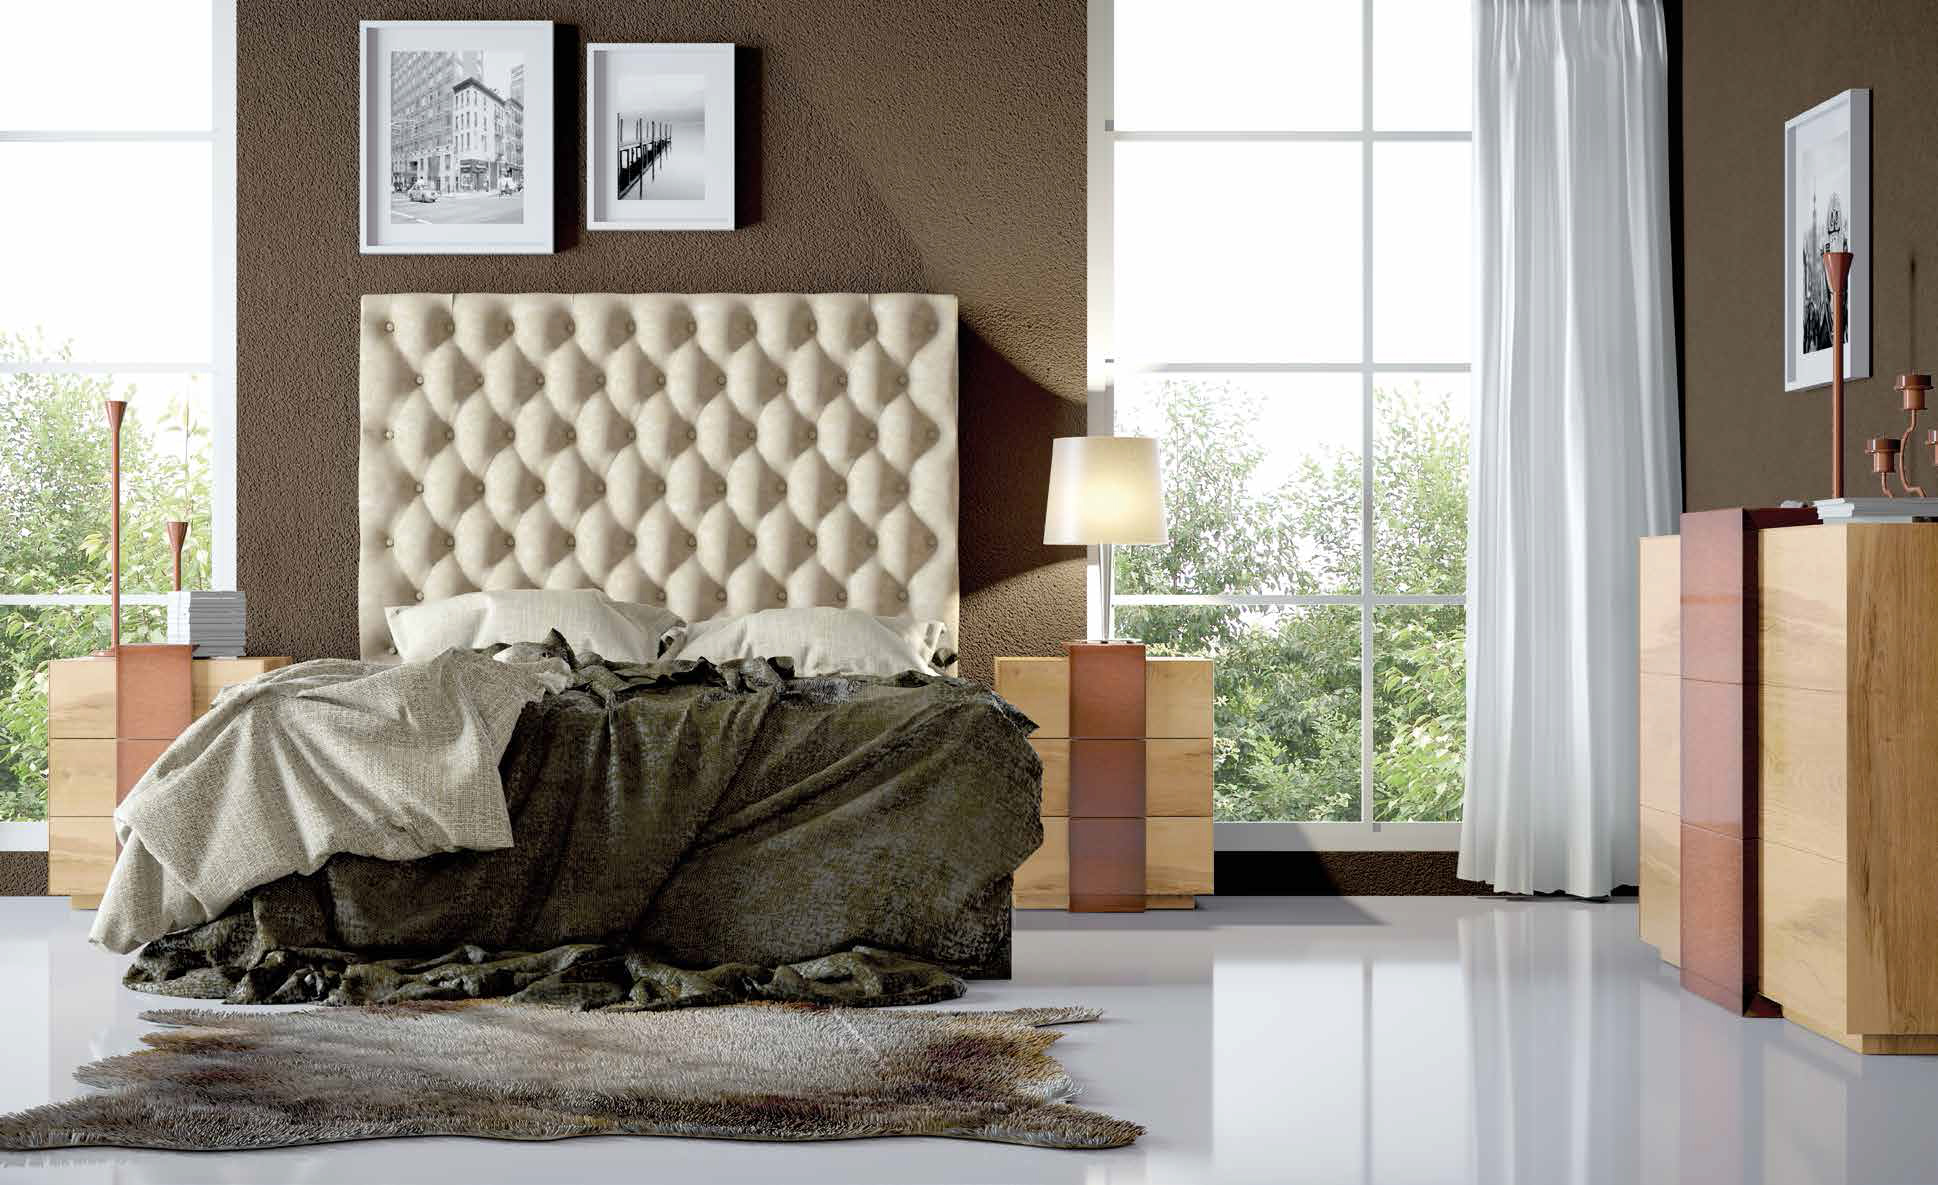 Brands Franco Furniture Bedrooms vol1, Spain DOR 06